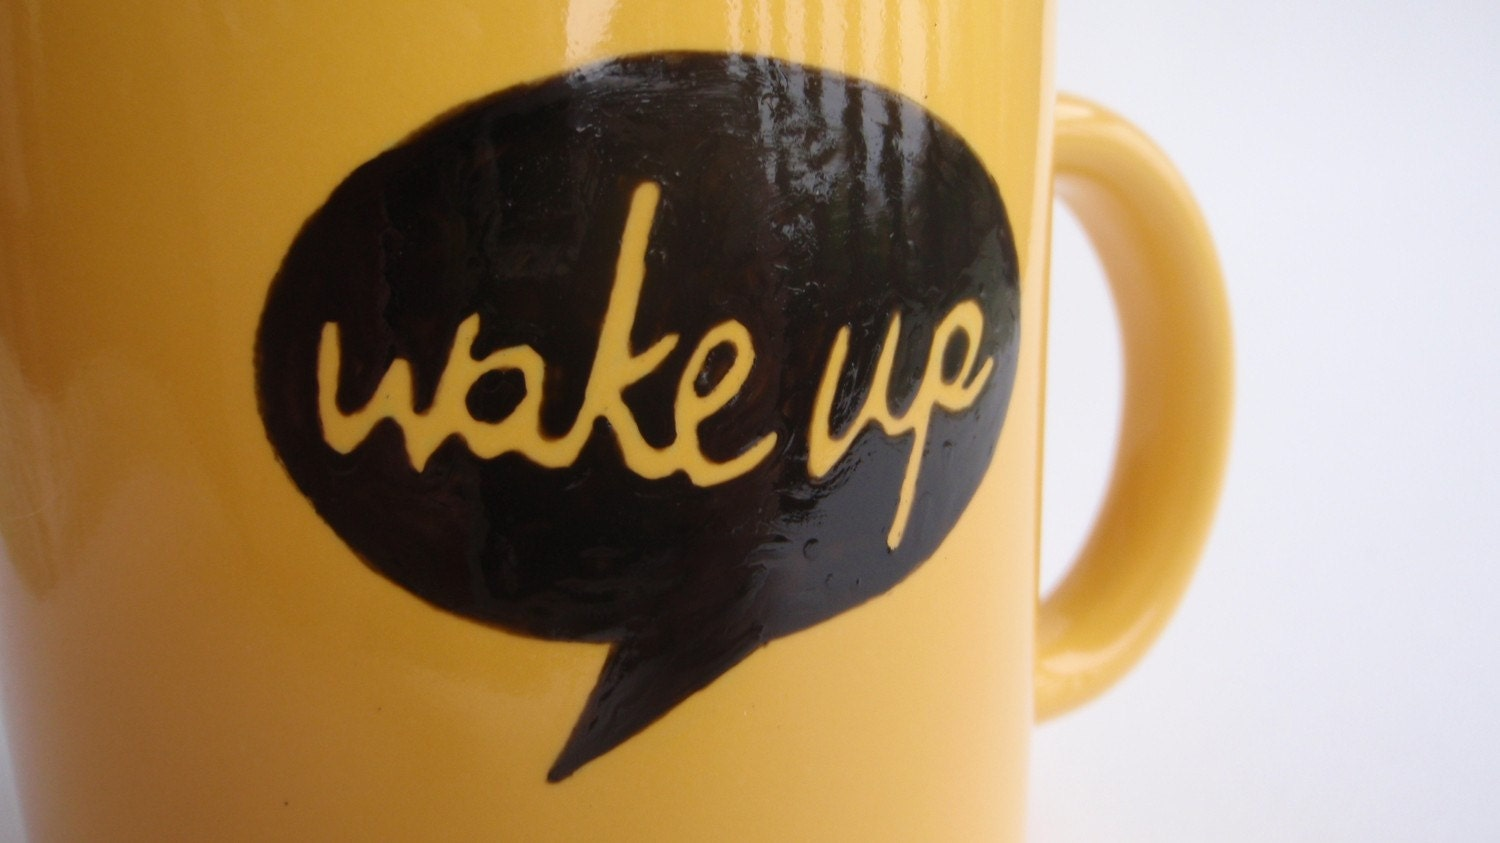 Wake Up - Talking Mug